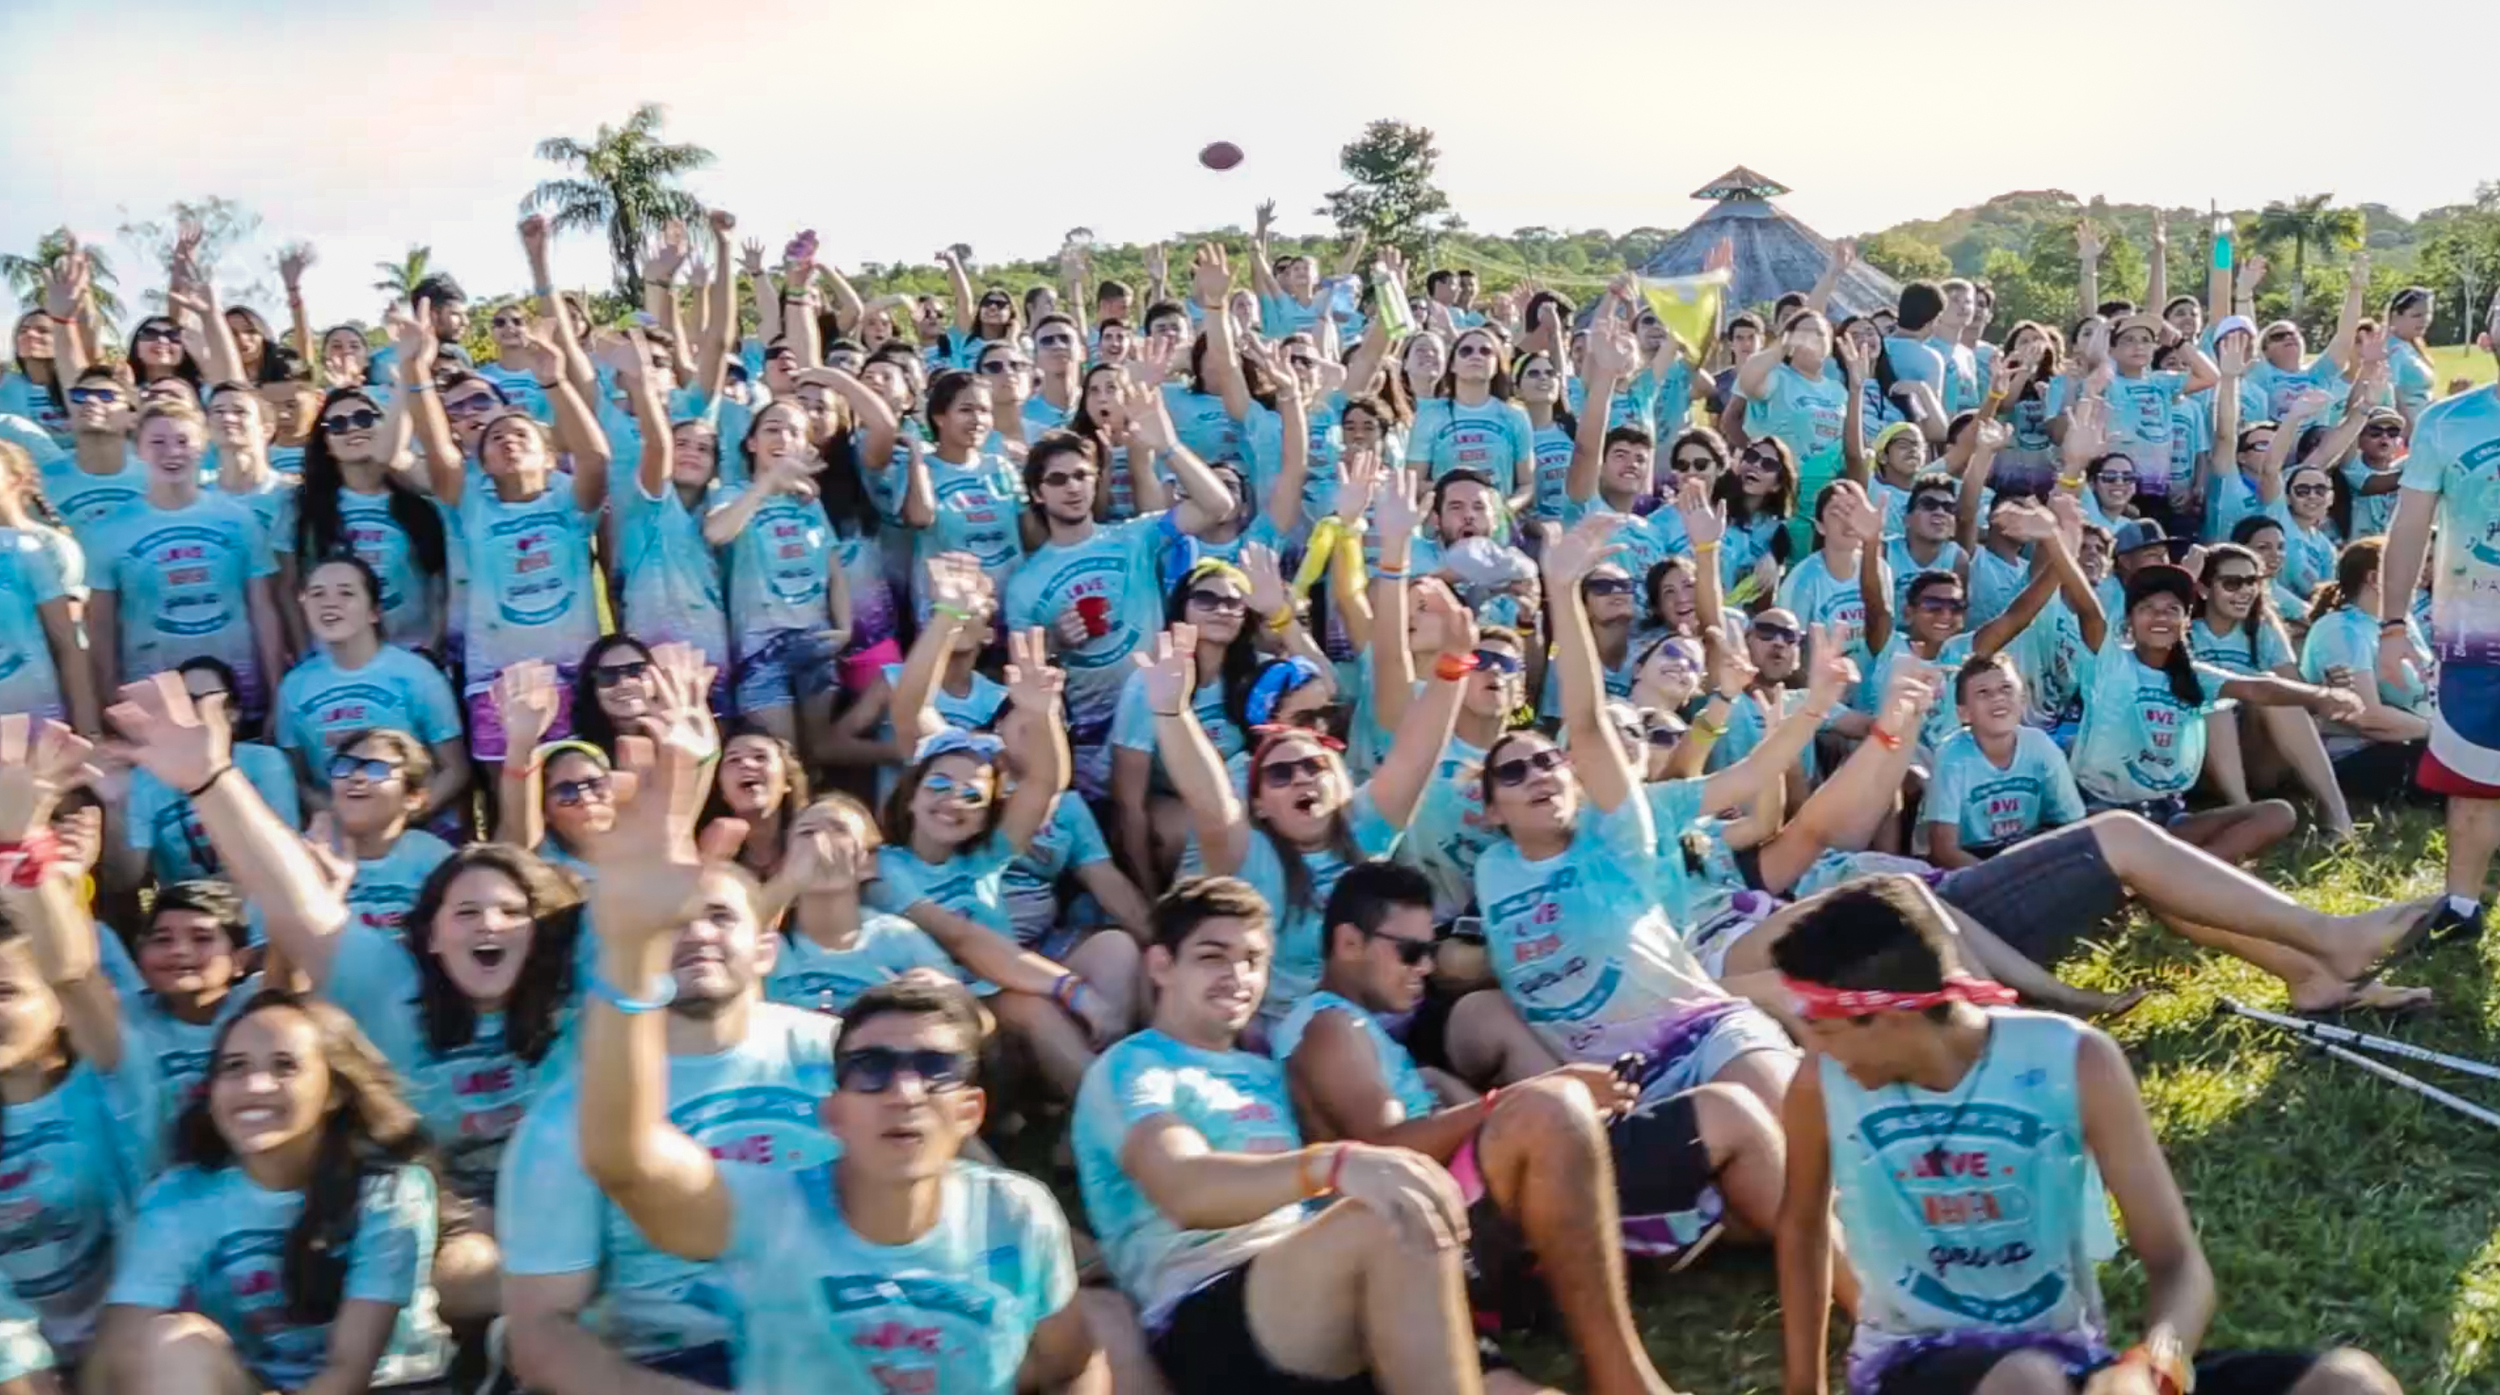 Students cheer as they prepare for the annual camp picture